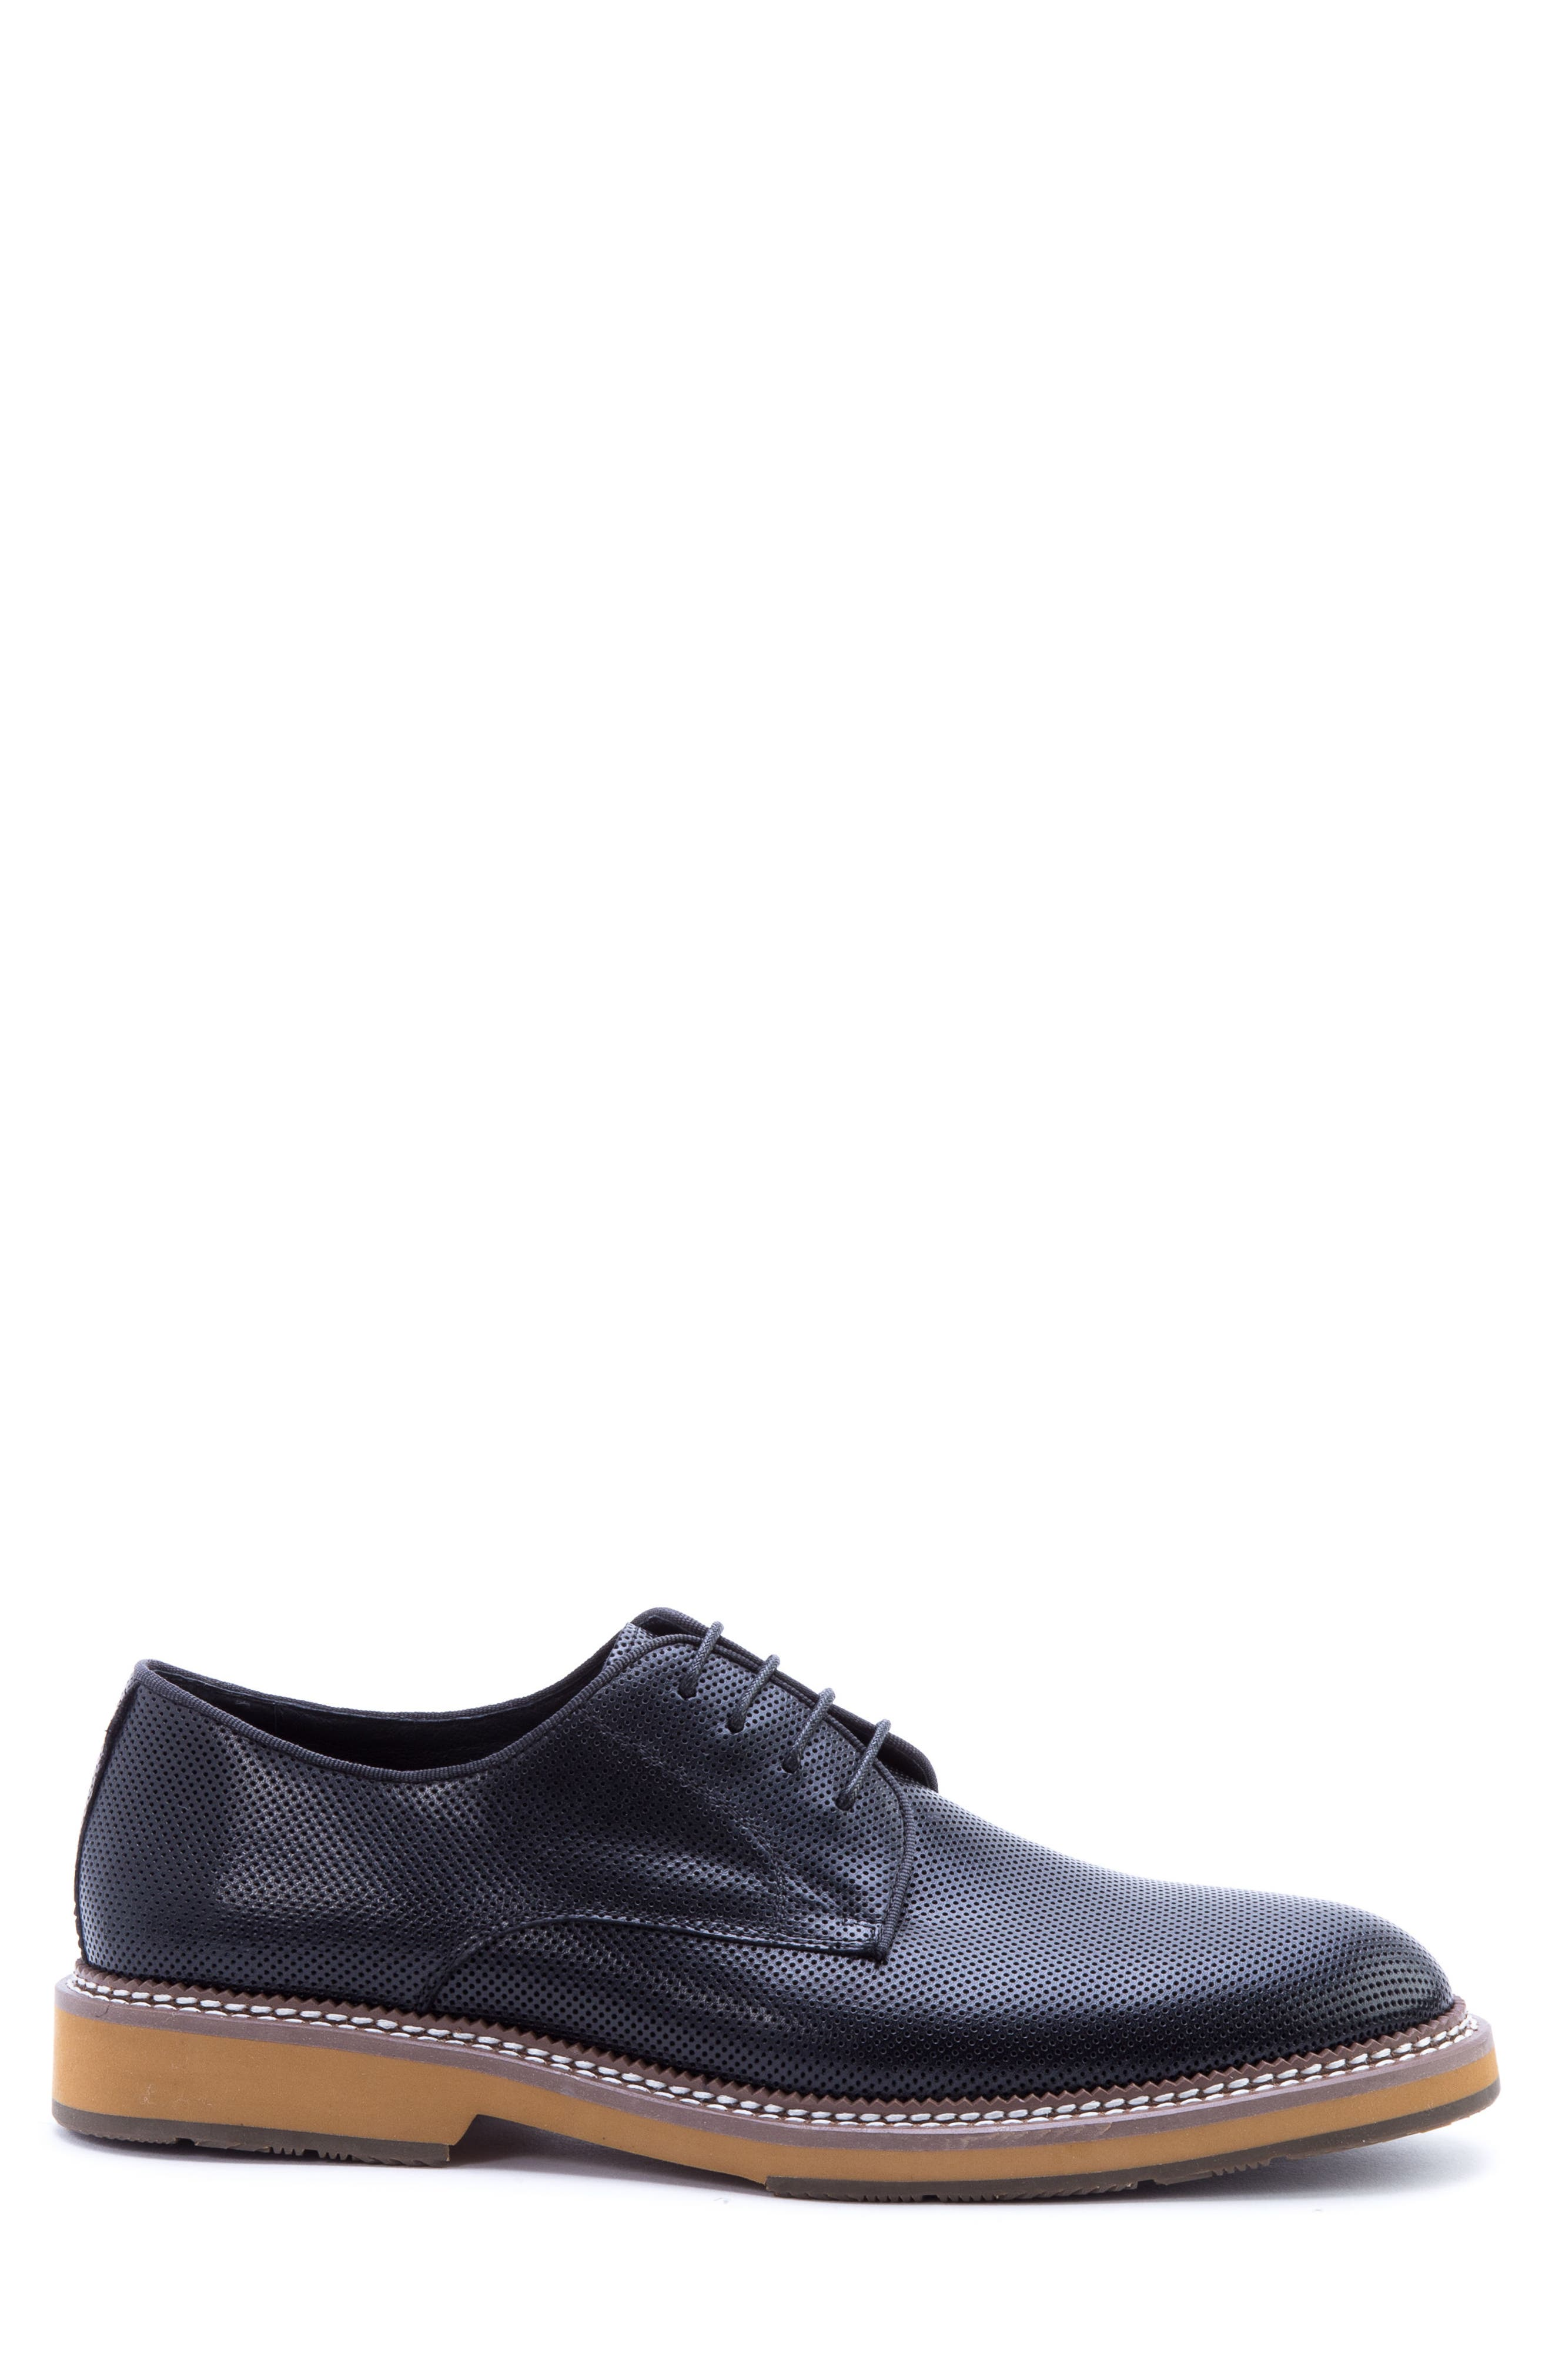 Monticello Perforated Plain Toe Derby,                             Alternate thumbnail 3, color,                             BLACK LEATHER